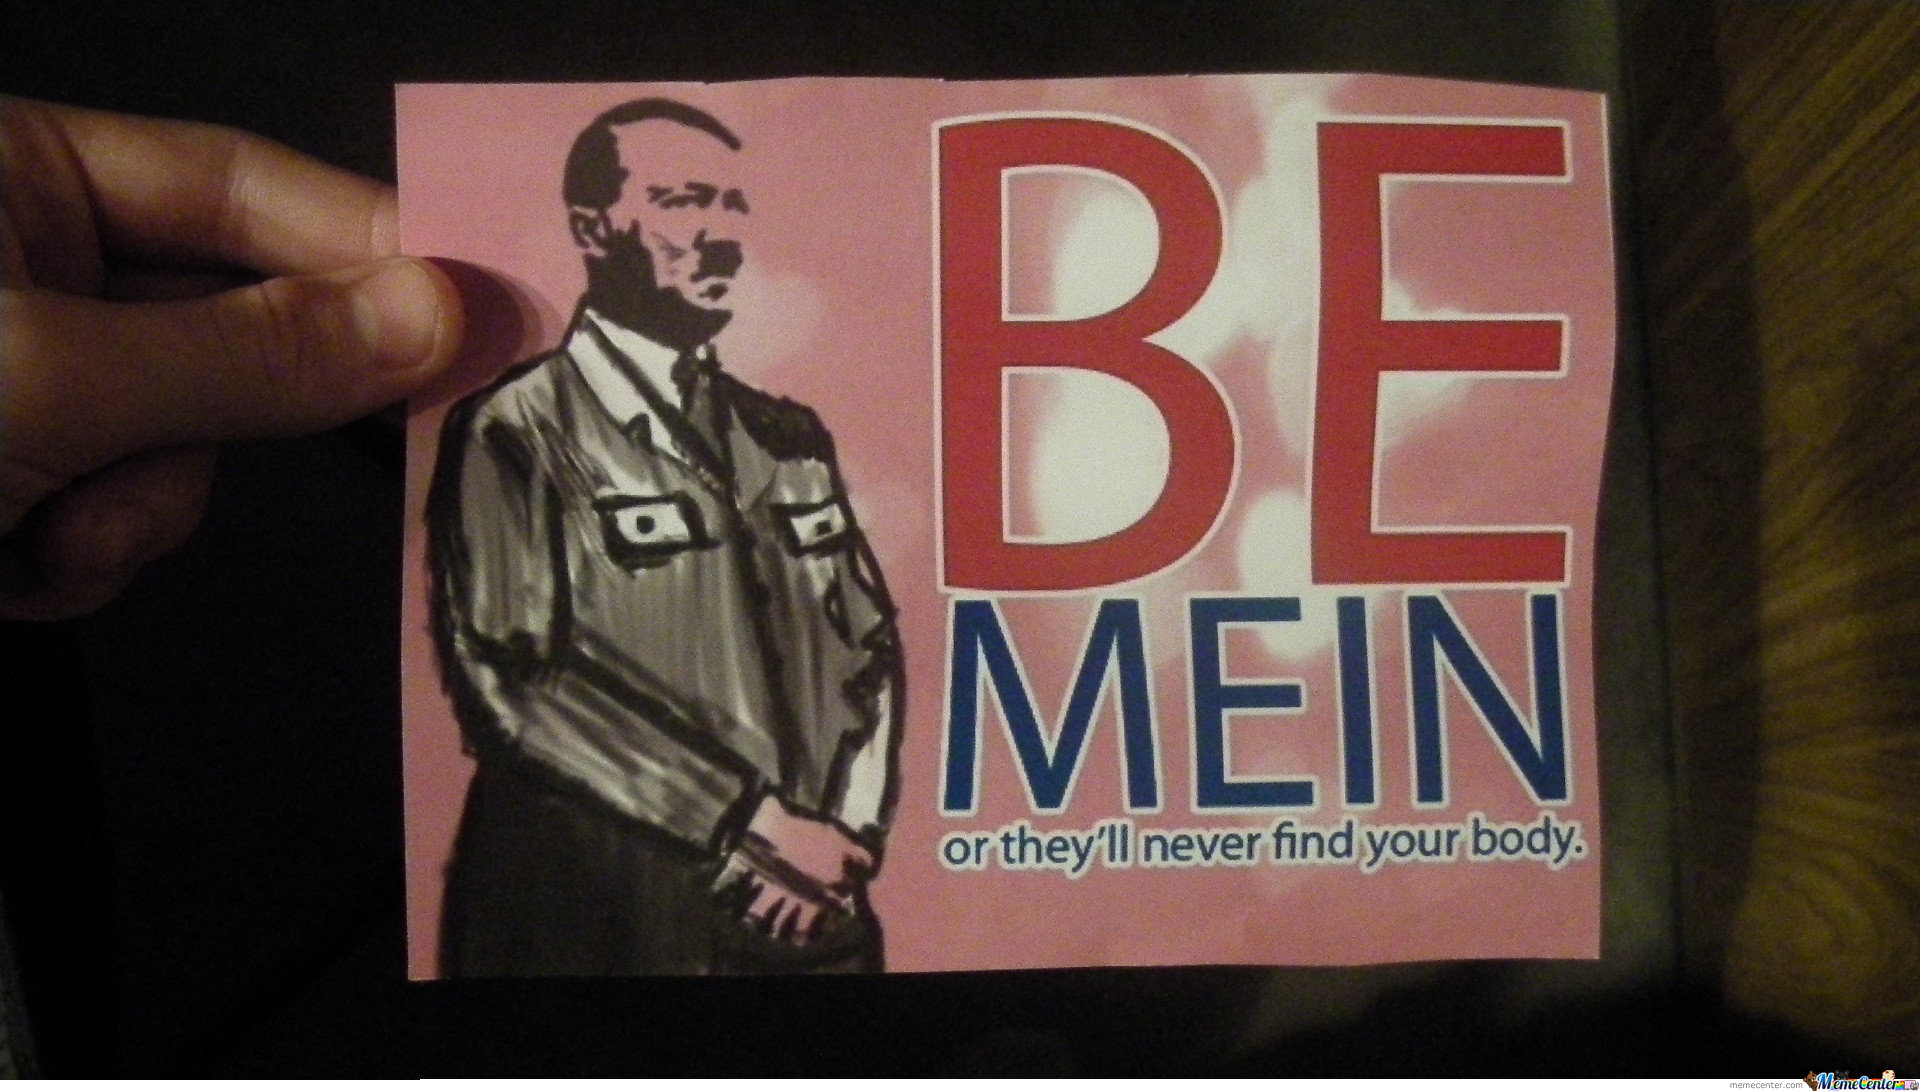 What My Friend Gave My Jewish Friend For Valentines Day